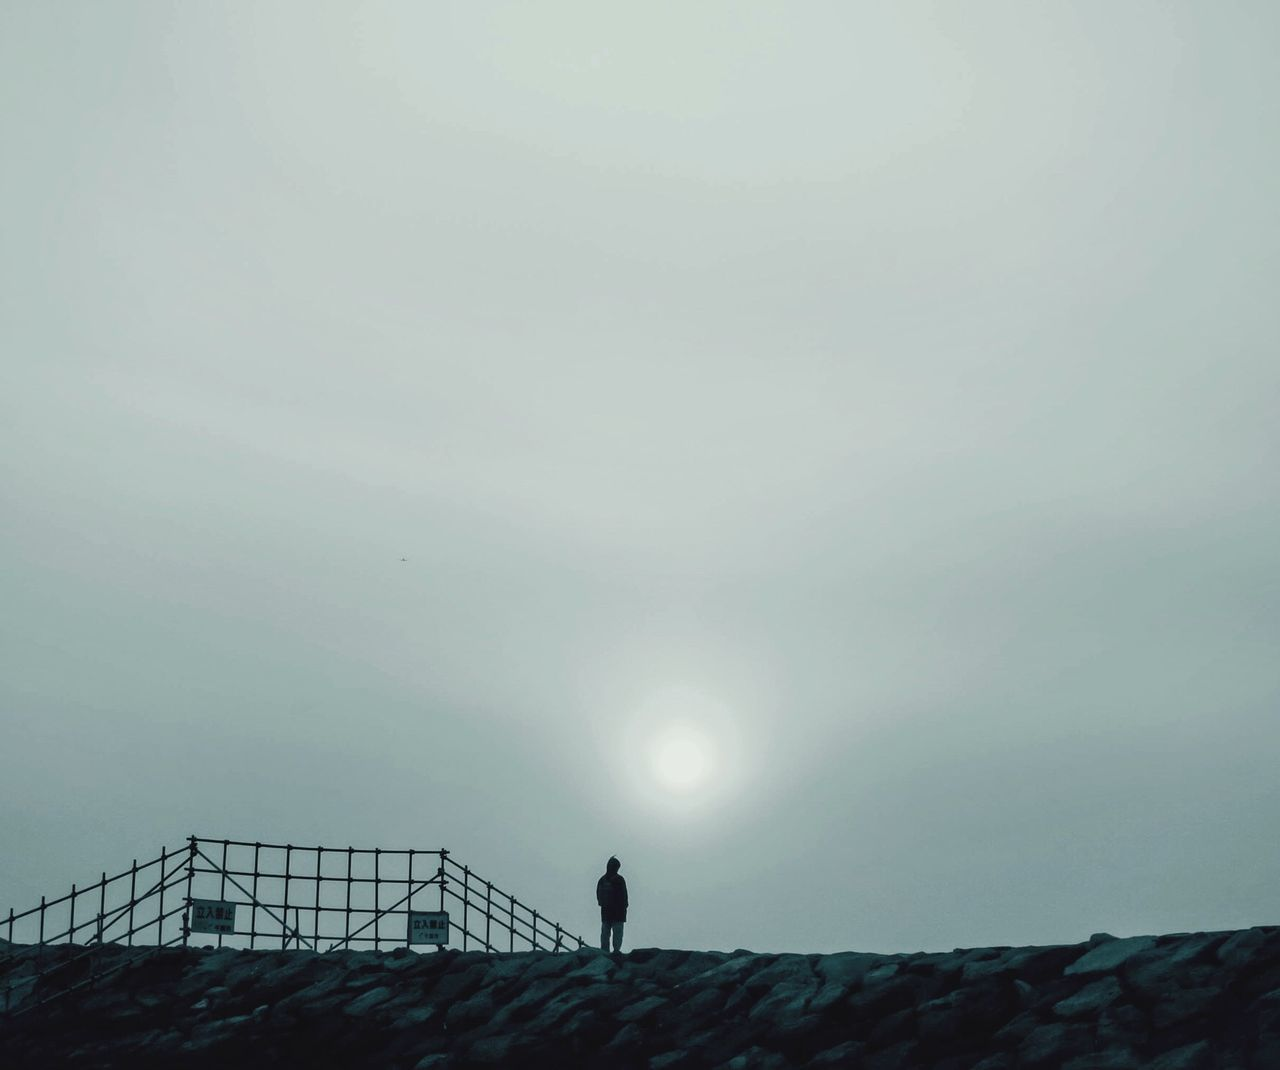 Low Angle View Of Man Standing On Hill Against Sky